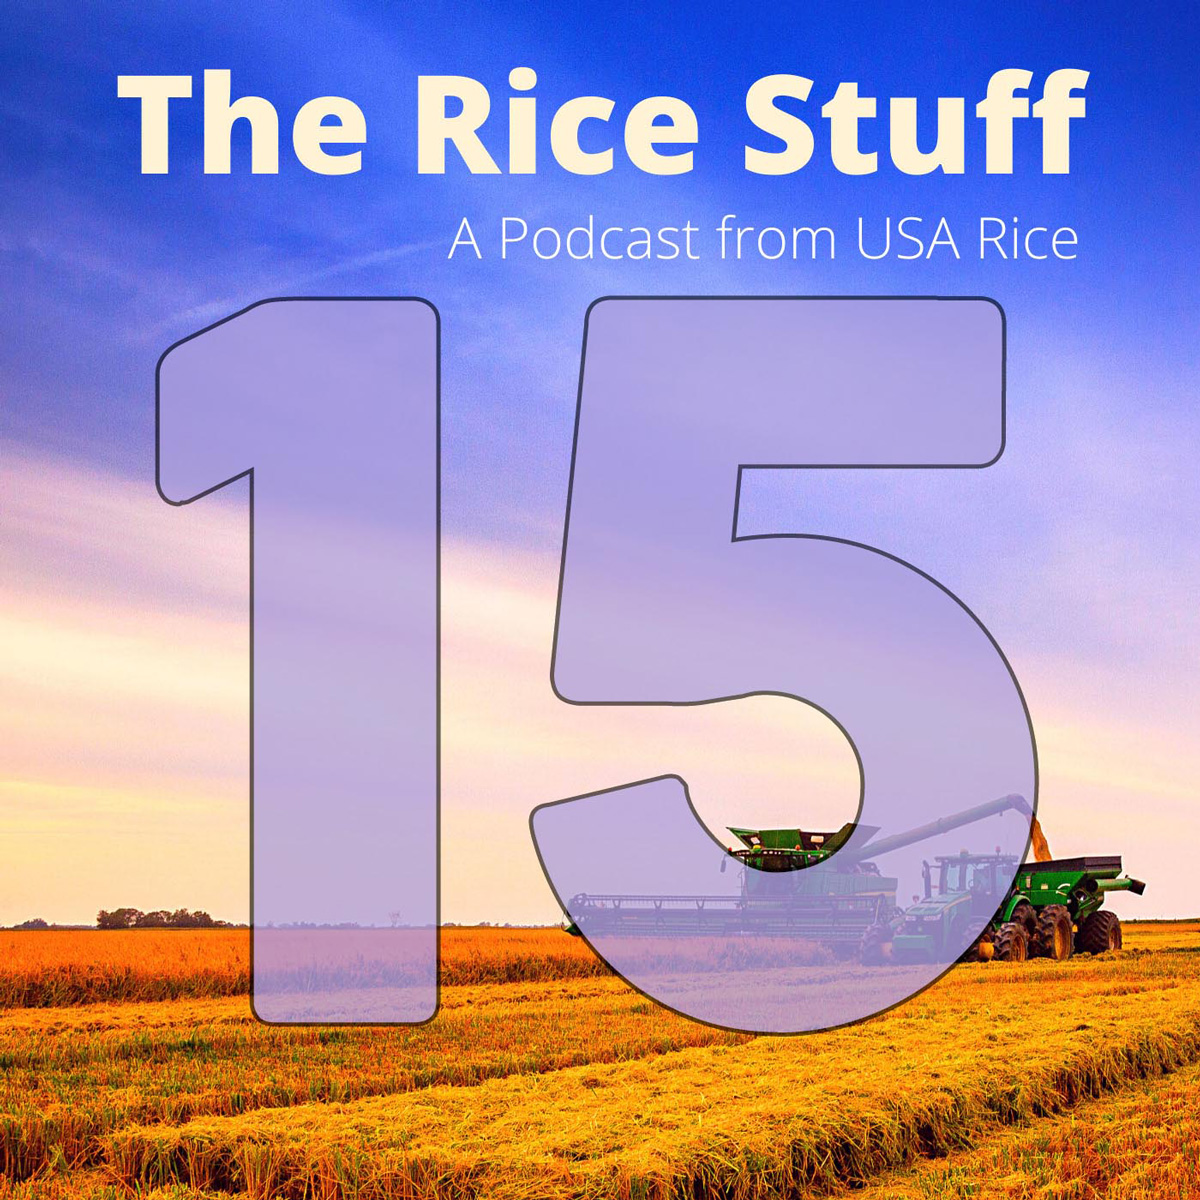 Number 15 superimposed over photo of combine and grain cart in mature rice field